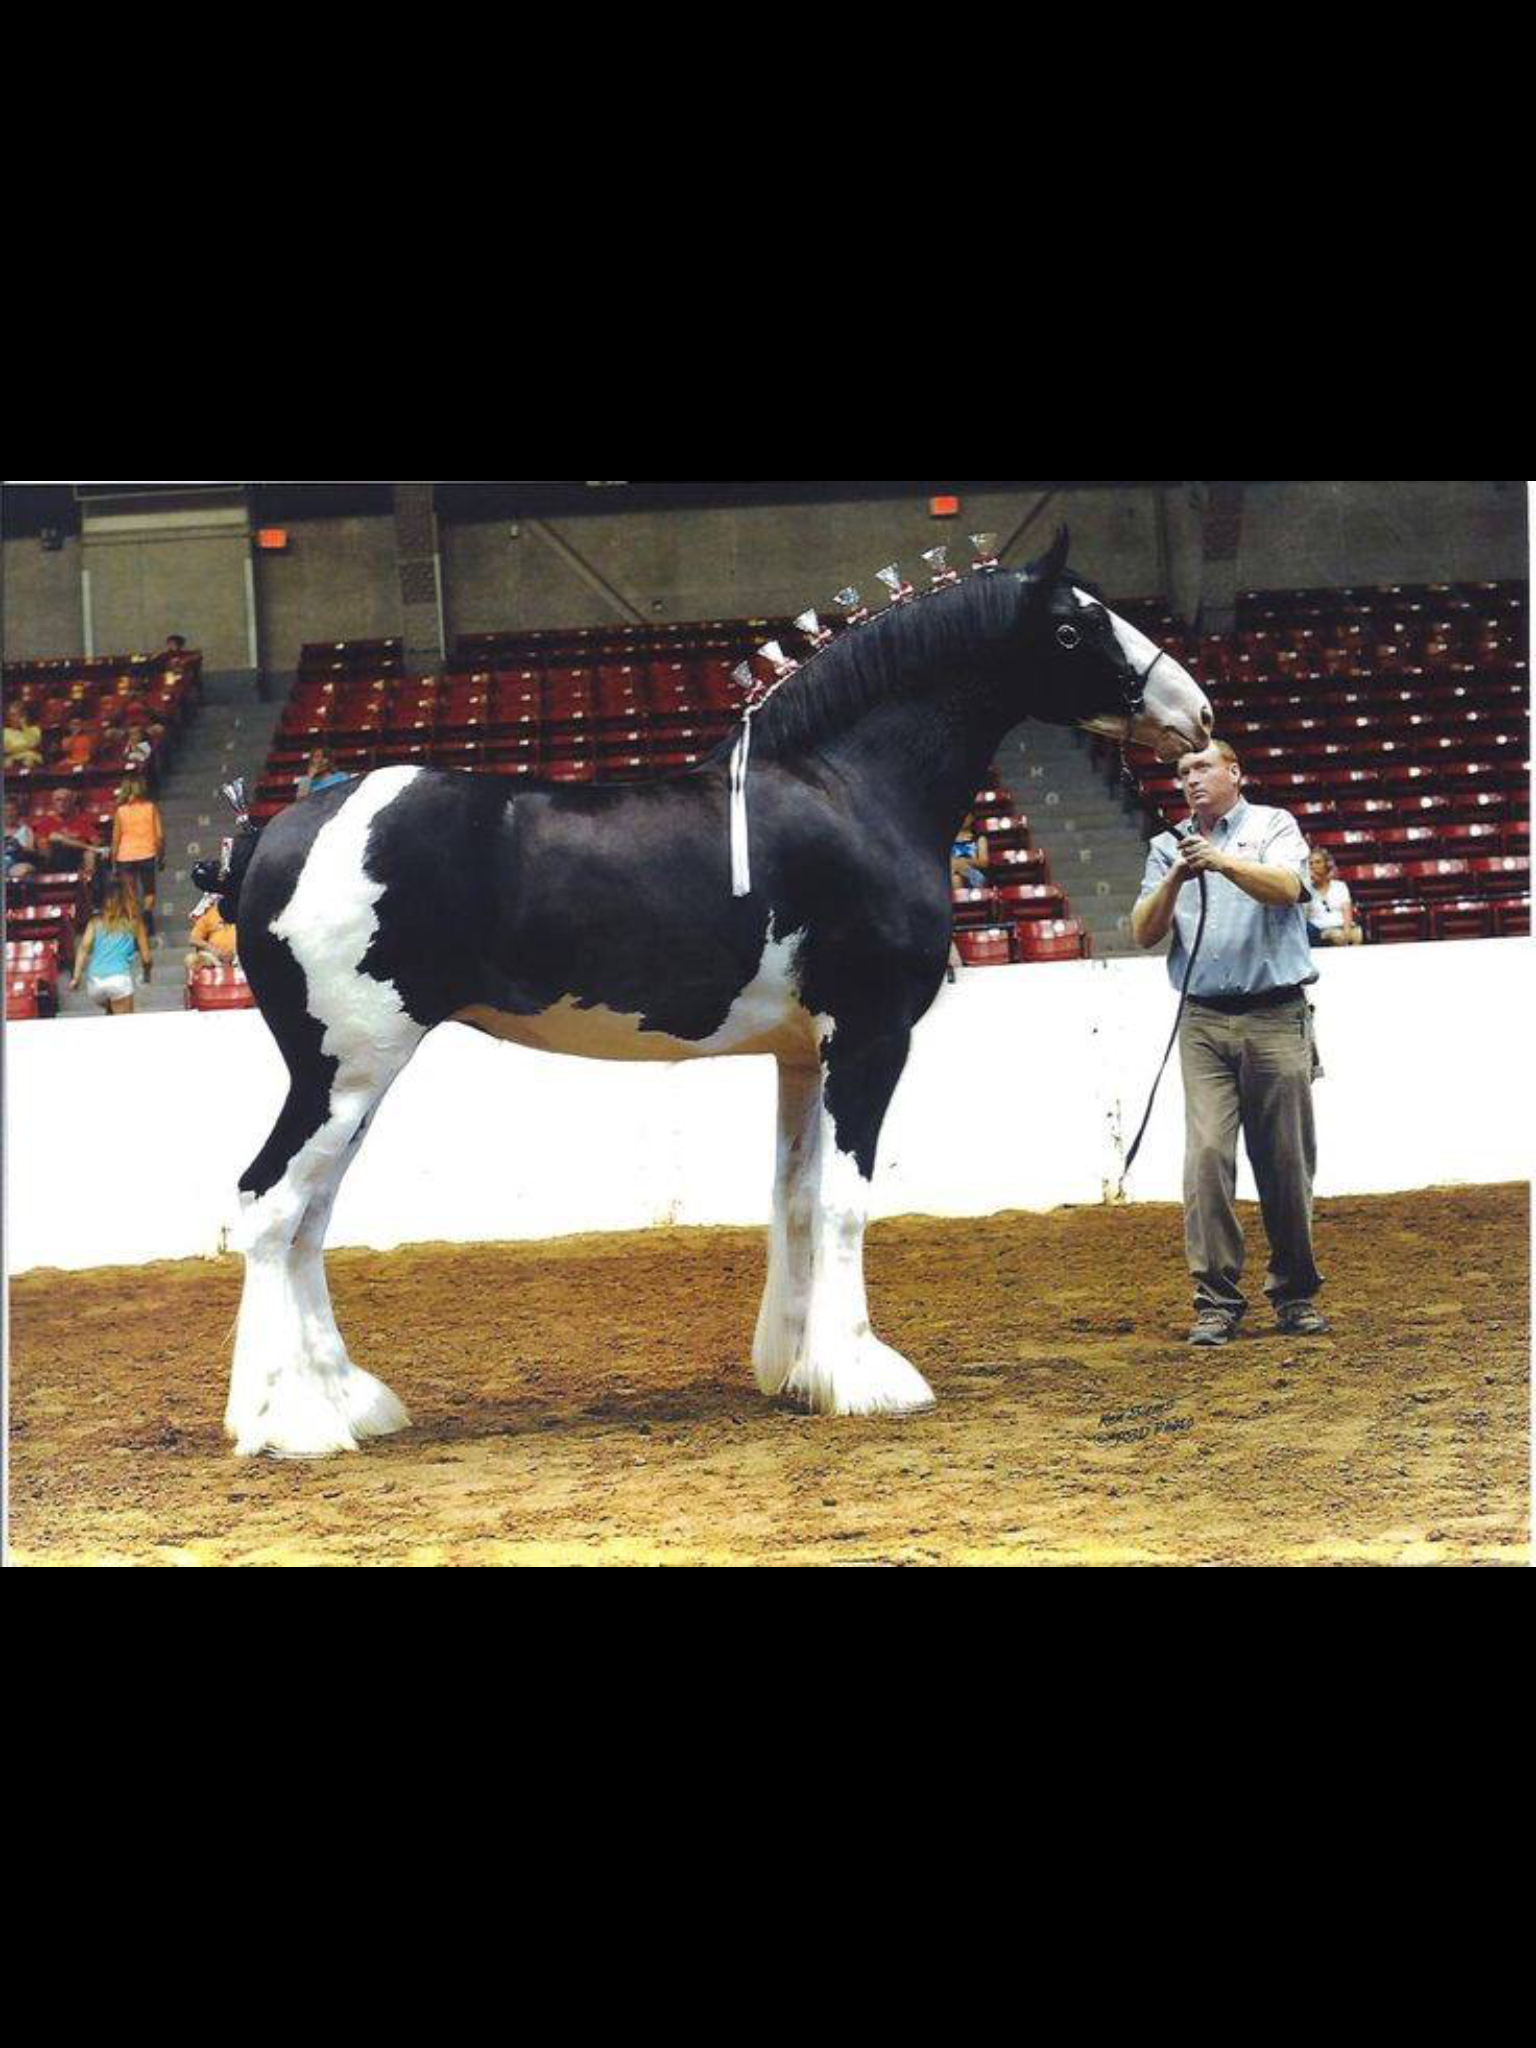 Pin By Hannah Bowers On Equines Horses Clydesdale Horses Beautiful Horses [ 2048 x 1536 Pixel ]